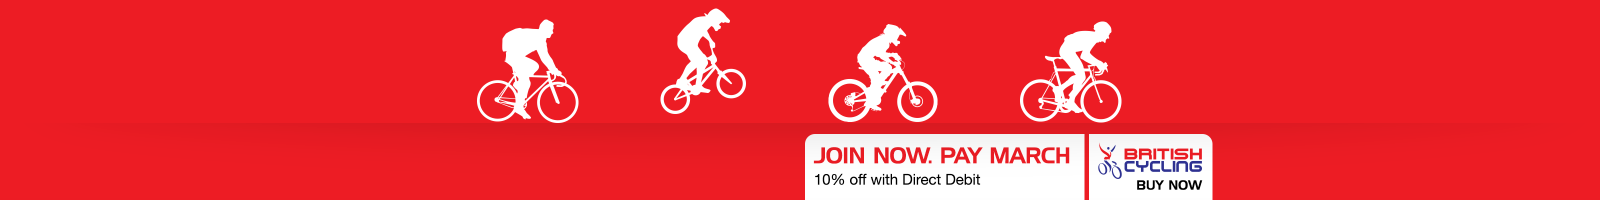 10% off British Cycling membership with Direct Debit